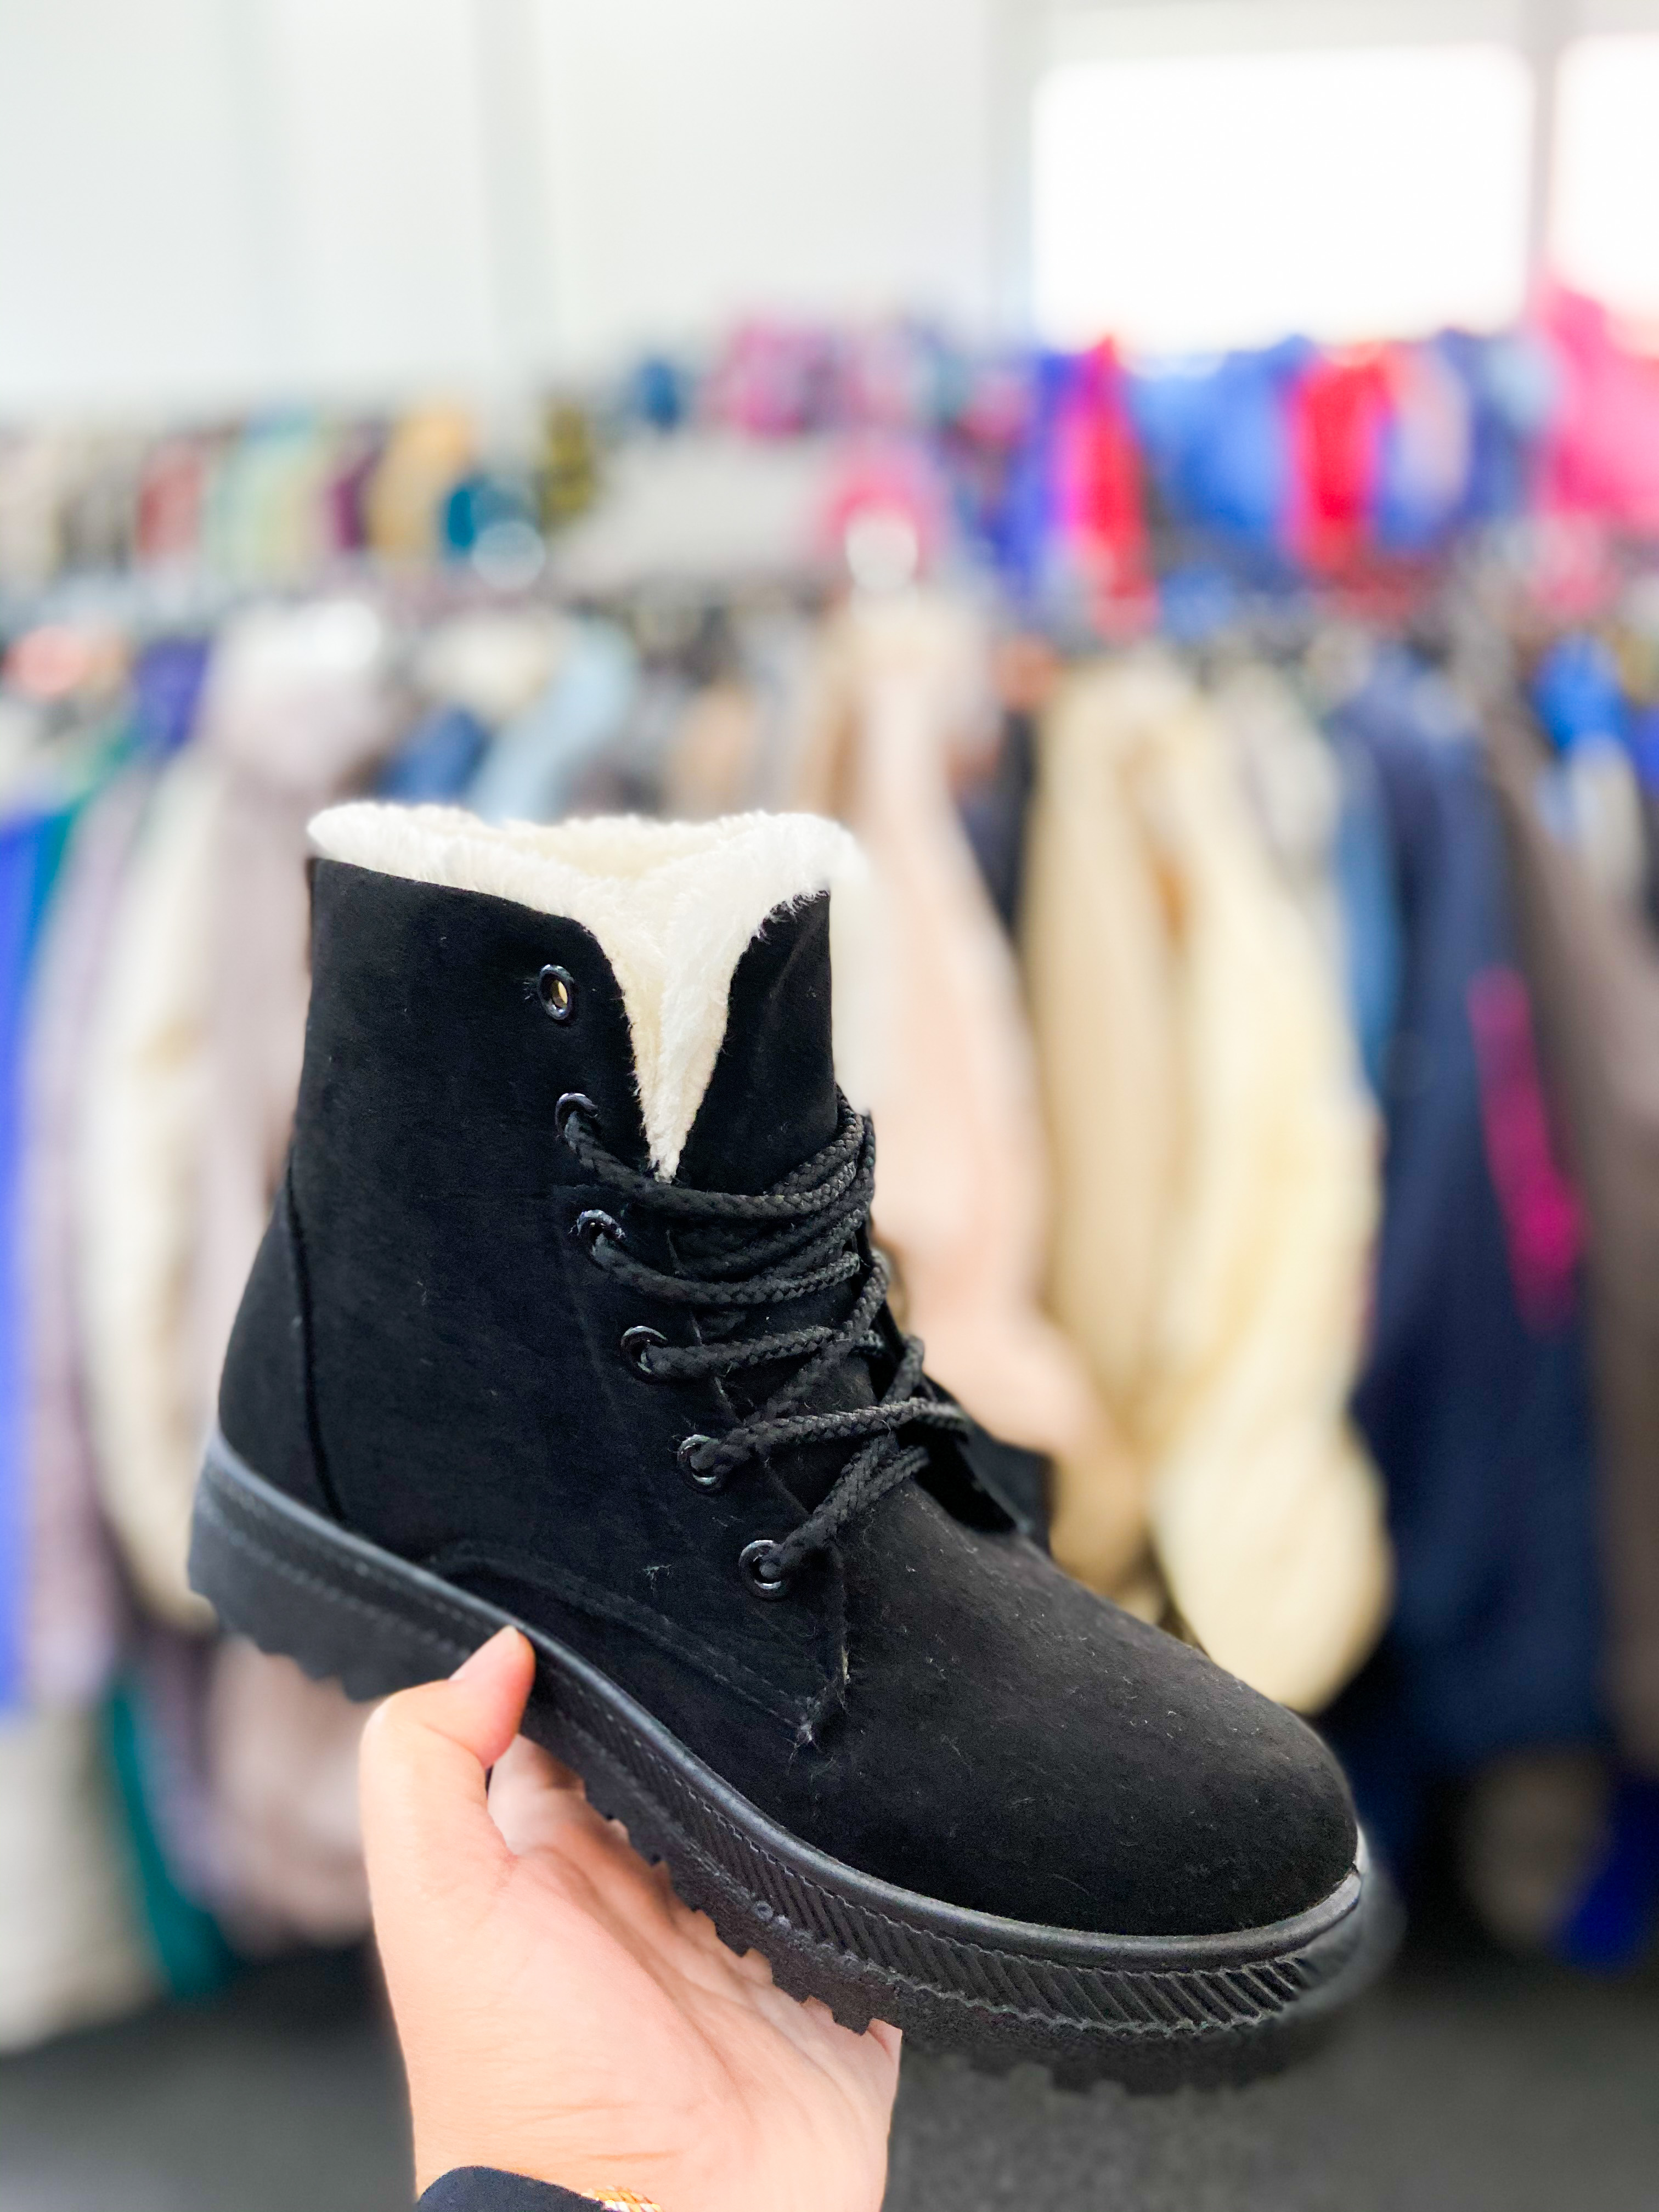 Winter shoes (anti slip, water resistant, warm & comfy sole)